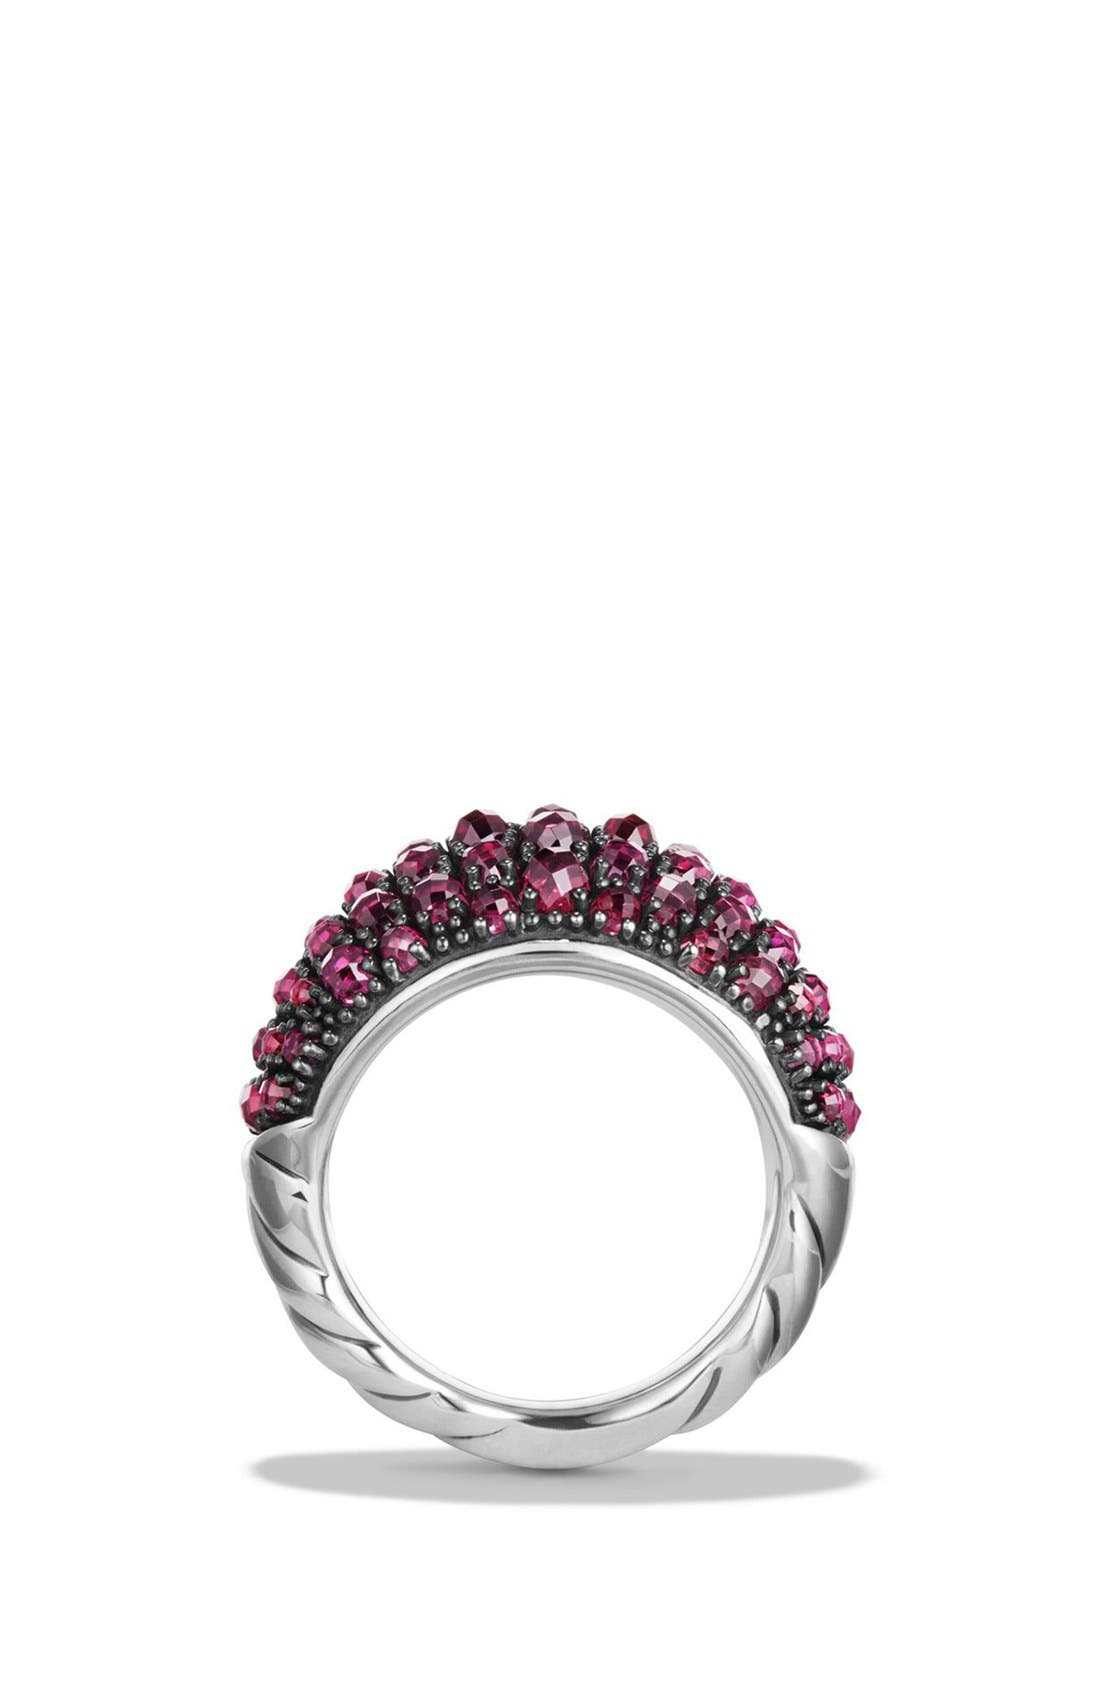 Cable Berries Dome Ring,                             Alternate thumbnail 2, color,                             RHODALITE